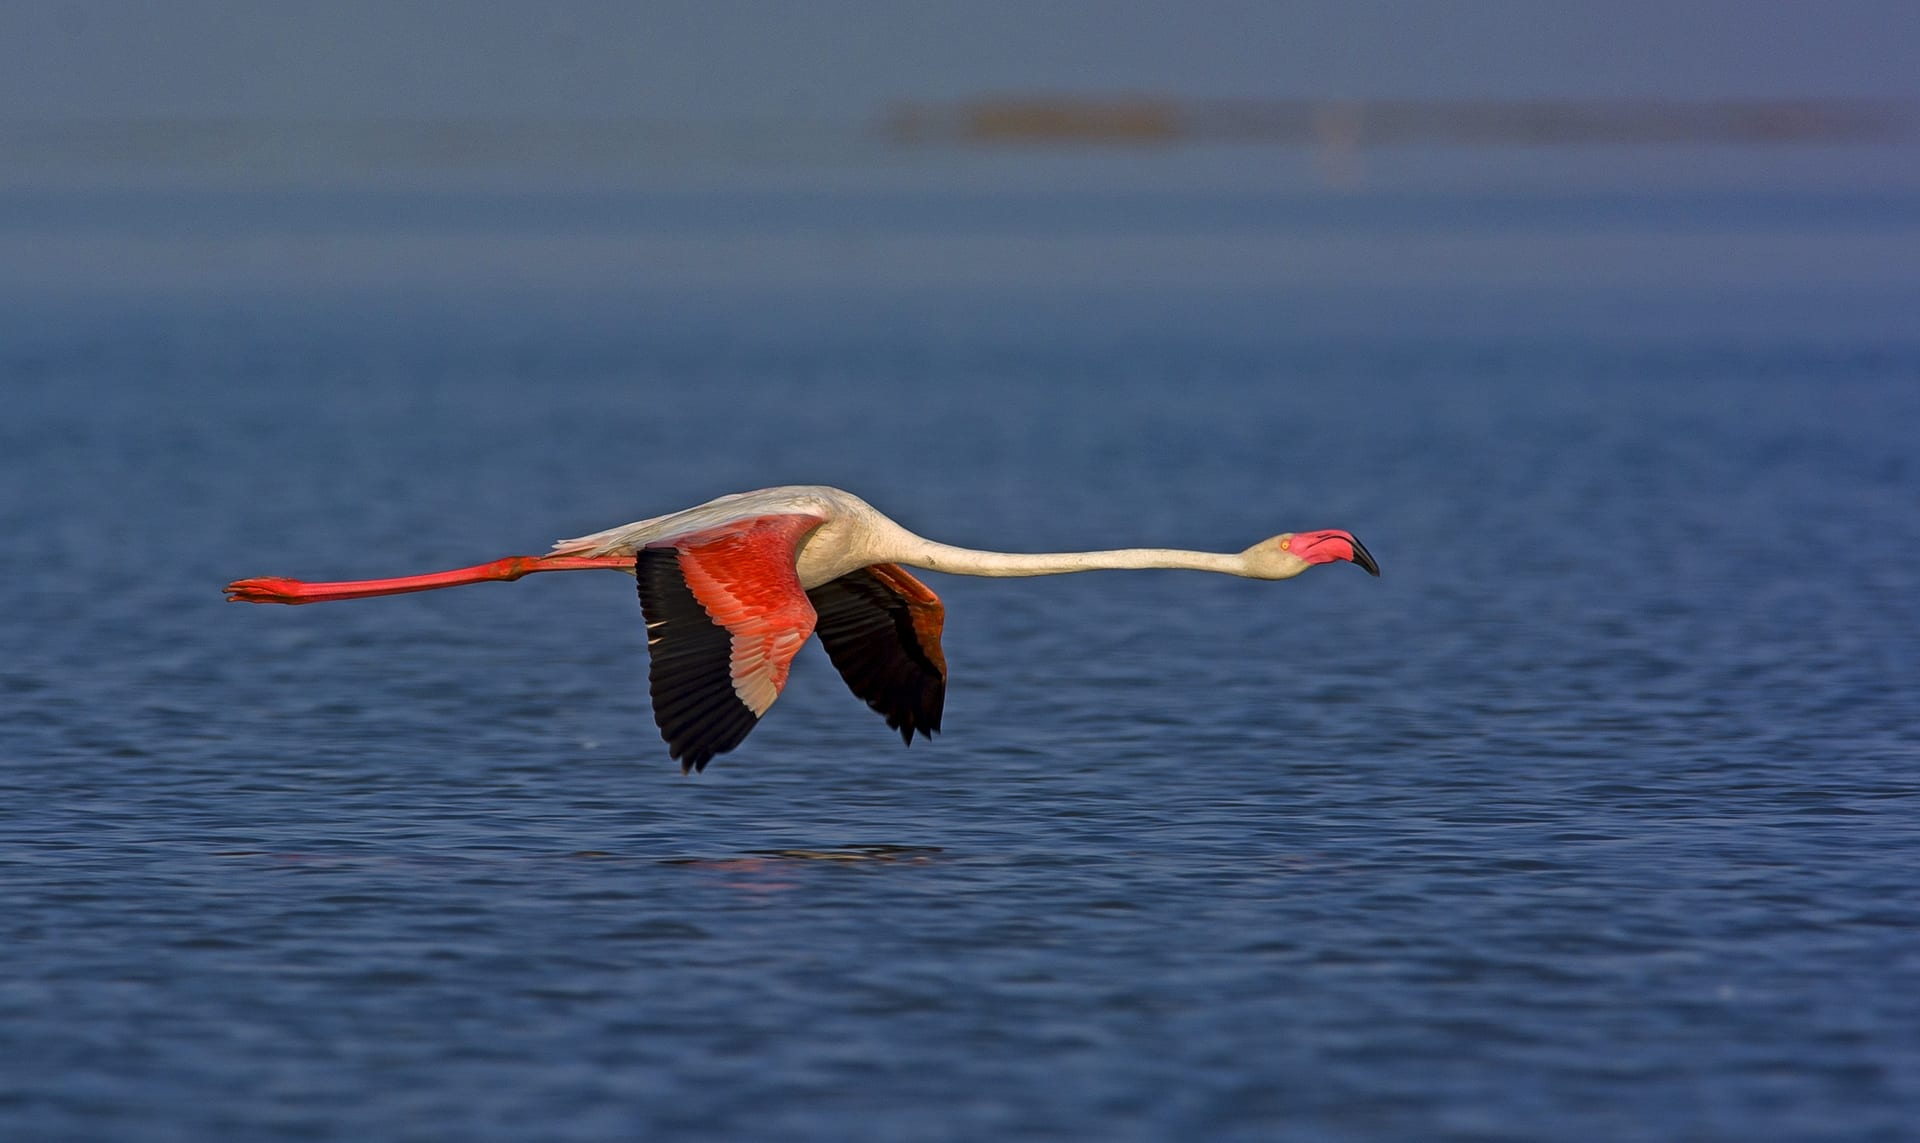 """There are six species of flamingos on Earth, of which the greater and lesser flamingos are found on the Indian subcontinent. The greater flamingo (Phoenicopterus roseus), pictured here, has a pink beak with a brownish-black tip, and is the largest of flamingo species. The lesser flamingo (Phoeniconaias minor) has a brownish-crimson beak (in adults) and is the smallest of the species. The Great and Little Rann of Kutch are the only known breeding sites in Asia where both species are found.  """"We have 5-6 nesting sites in the Little Rann,"""" says Nita Shah, a conservation ecologist who has been observing the species and this habitat for 34 years. """"Out of these, 3-4 sites are mixed colonies with greater and lesser flamingos, and about two or three are pure colonies, occupied by a single species."""""""